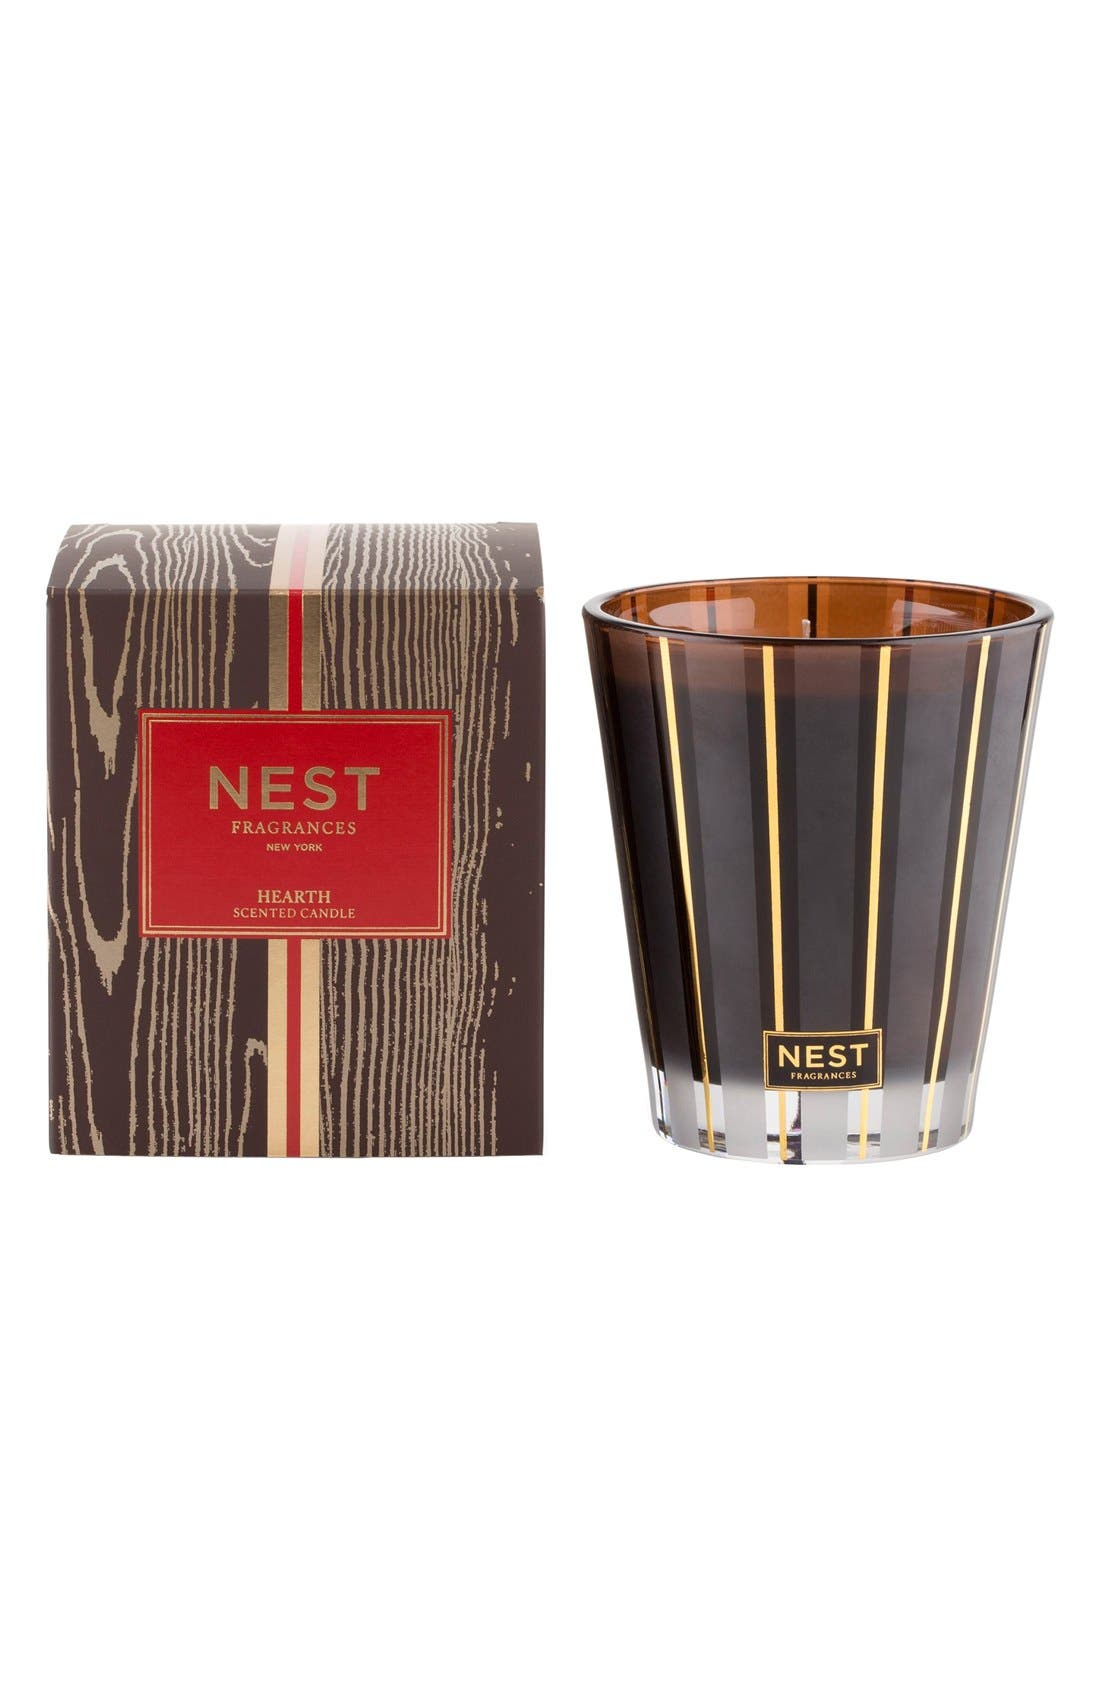 Main Image - NEST Fragrances Hearth Scented Classic Candle